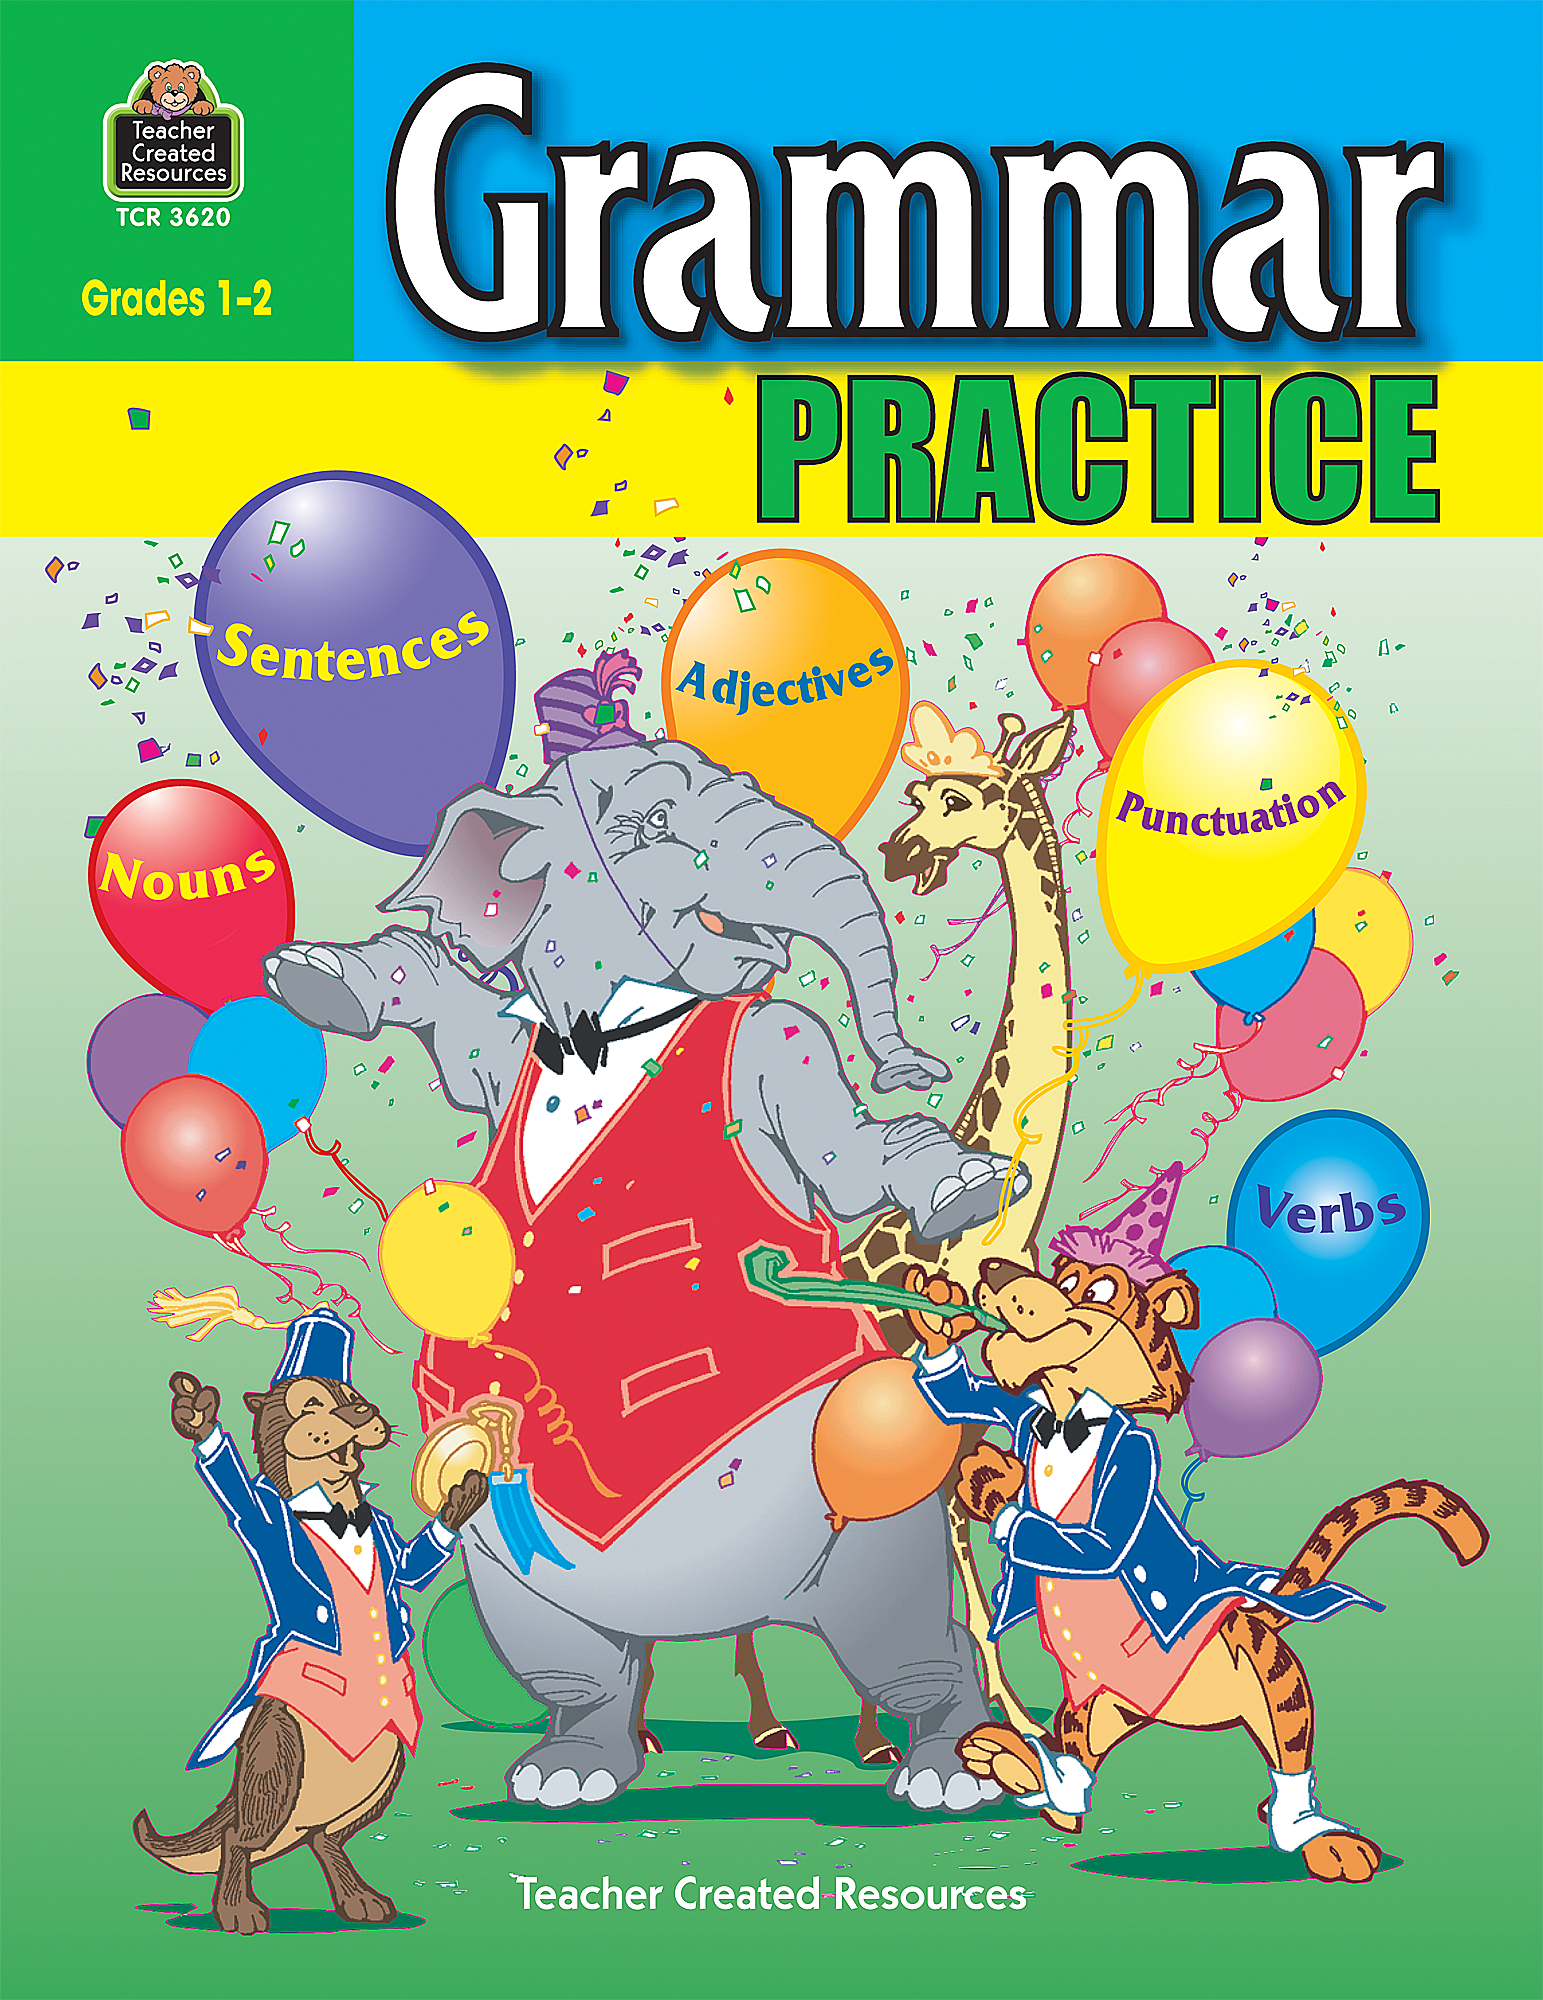 Grammar Practice For Grades 1 2 With Images